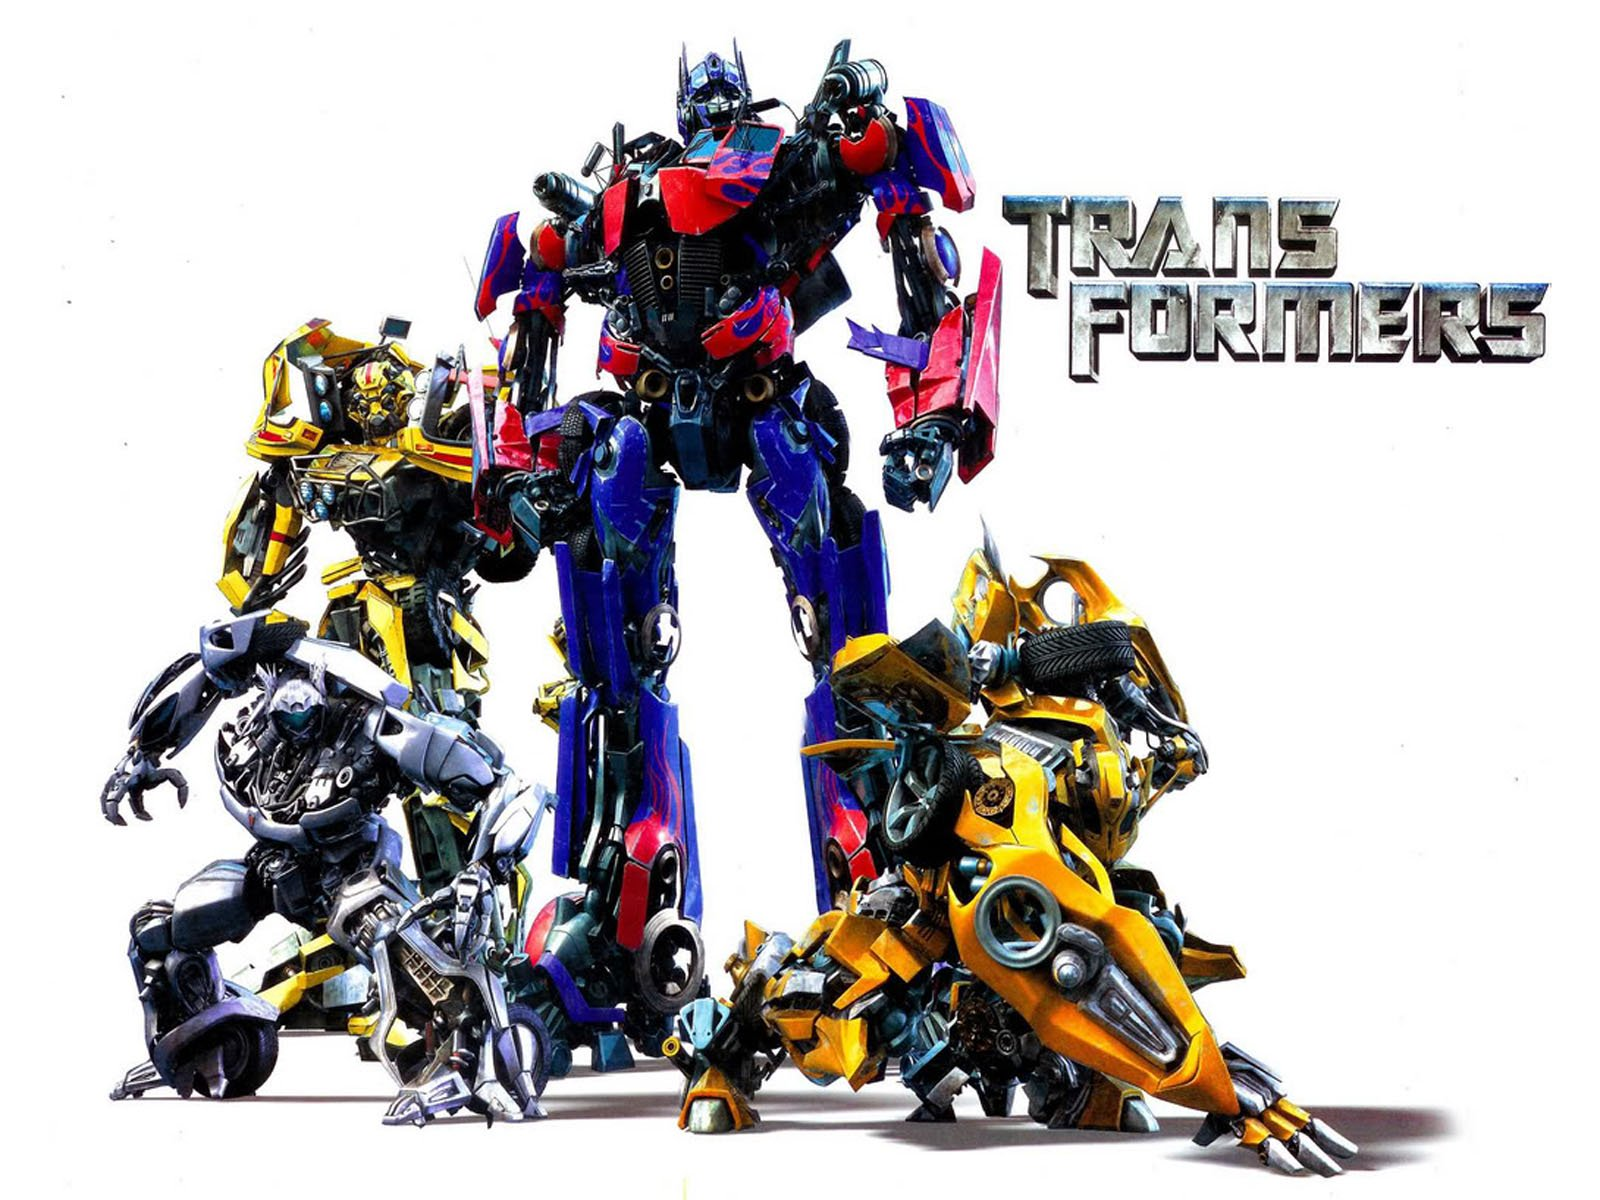 HD Transformers Wallpapers Backgrounds For Download 1600x1200